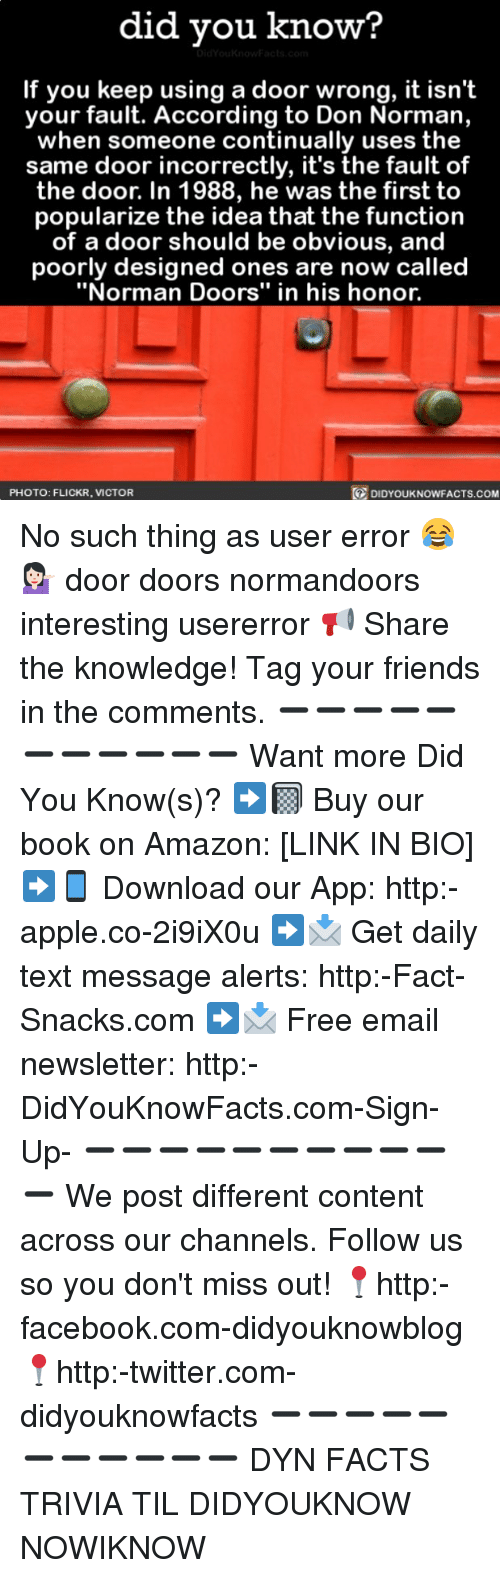 """Amazon, Apple, and Facebook: did you know?  If you keep using a door wrong, it isn't  your fault. According to Don Norman,  when someone continually uses the  same door incorrectly, it's the fault of  the door. In 1988, he was the first to  popularize the idea that the function  of a door should be obvious, and  poorly designed ones are now called  """"Norman Doors"""" in his honor.  PHOTO: FLICKR, VICTOR  DIDYOUKNOWFACTS.COM No such thing as user error 😂💁🏻 door doors normandoors interesting usererror 📢 Share the knowledge! Tag your friends in the comments. ➖➖➖➖➖➖➖➖➖➖➖ Want more Did You Know(s)? ➡📓 Buy our book on Amazon: [LINK IN BIO] ➡📱 Download our App: http:-apple.co-2i9iX0u ➡📩 Get daily text message alerts: http:-Fact-Snacks.com ➡📩 Free email newsletter: http:-DidYouKnowFacts.com-Sign-Up- ➖➖➖➖➖➖➖➖➖➖➖ We post different content across our channels. Follow us so you don't miss out! 📍http:-facebook.com-didyouknowblog 📍http:-twitter.com-didyouknowfacts ➖➖➖➖➖➖➖➖➖➖➖ DYN FACTS TRIVIA TIL DIDYOUKNOW NOWIKNOW"""